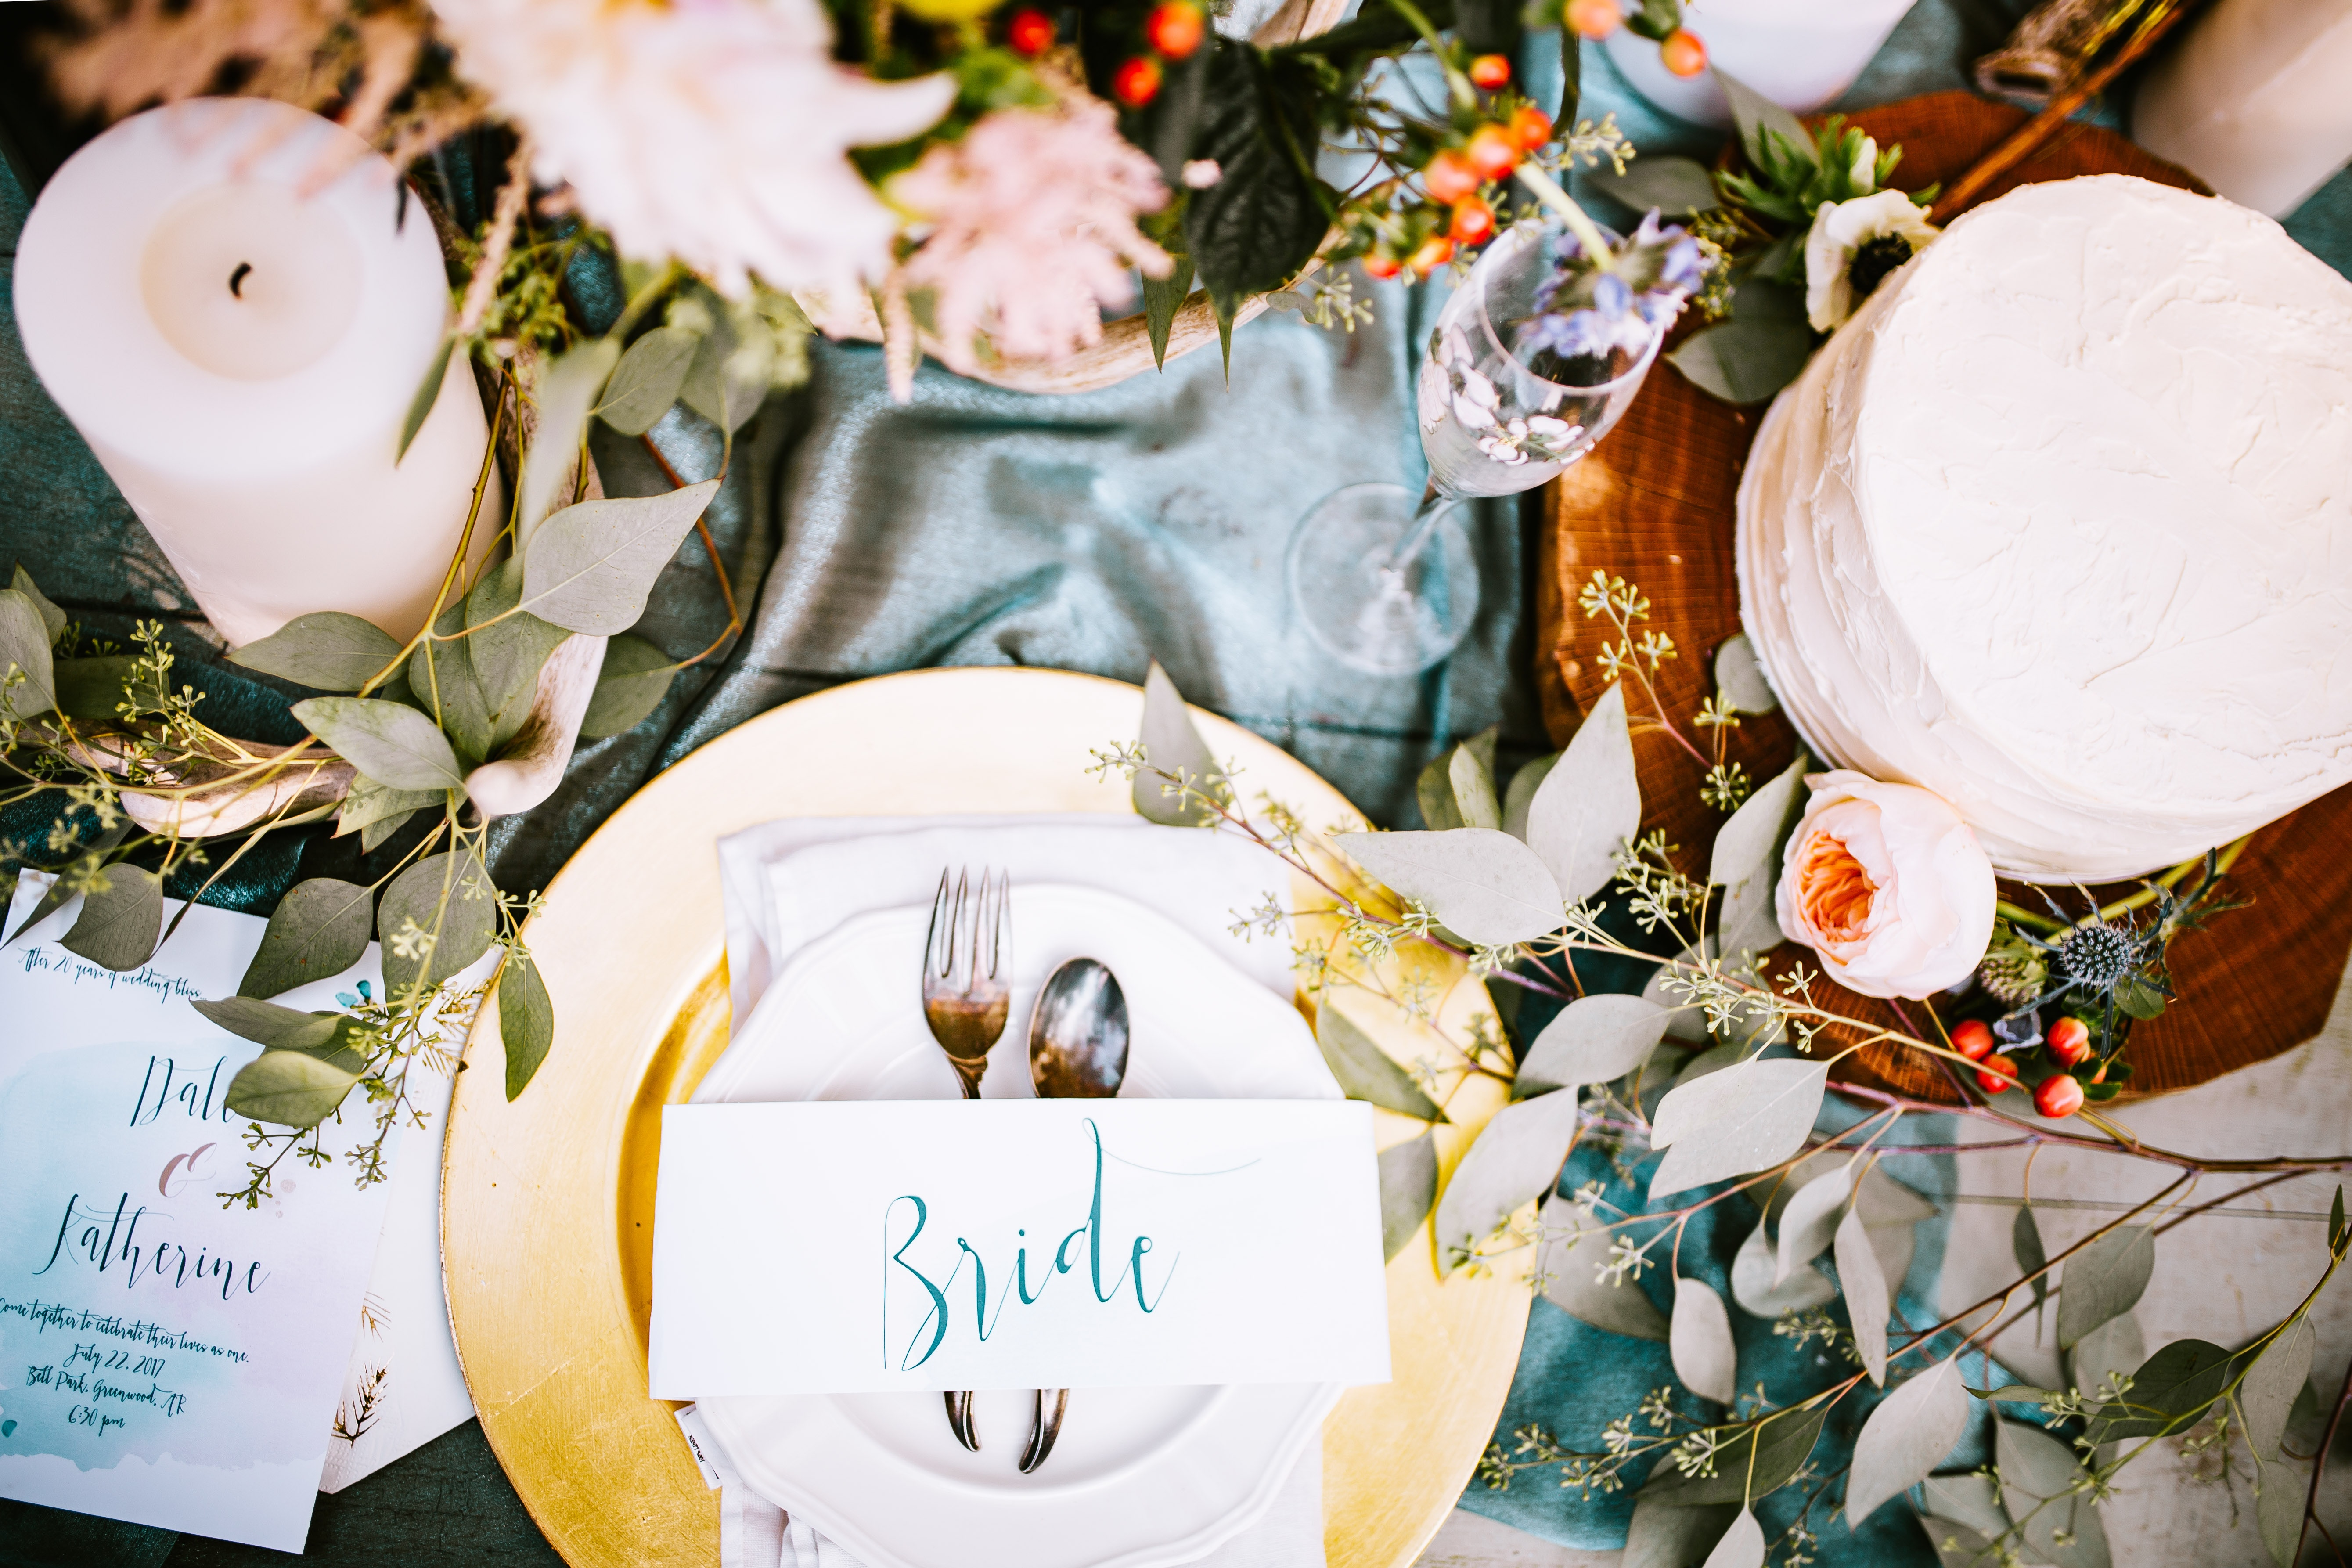 bride-set-up-annie-gray-376049-unsplash